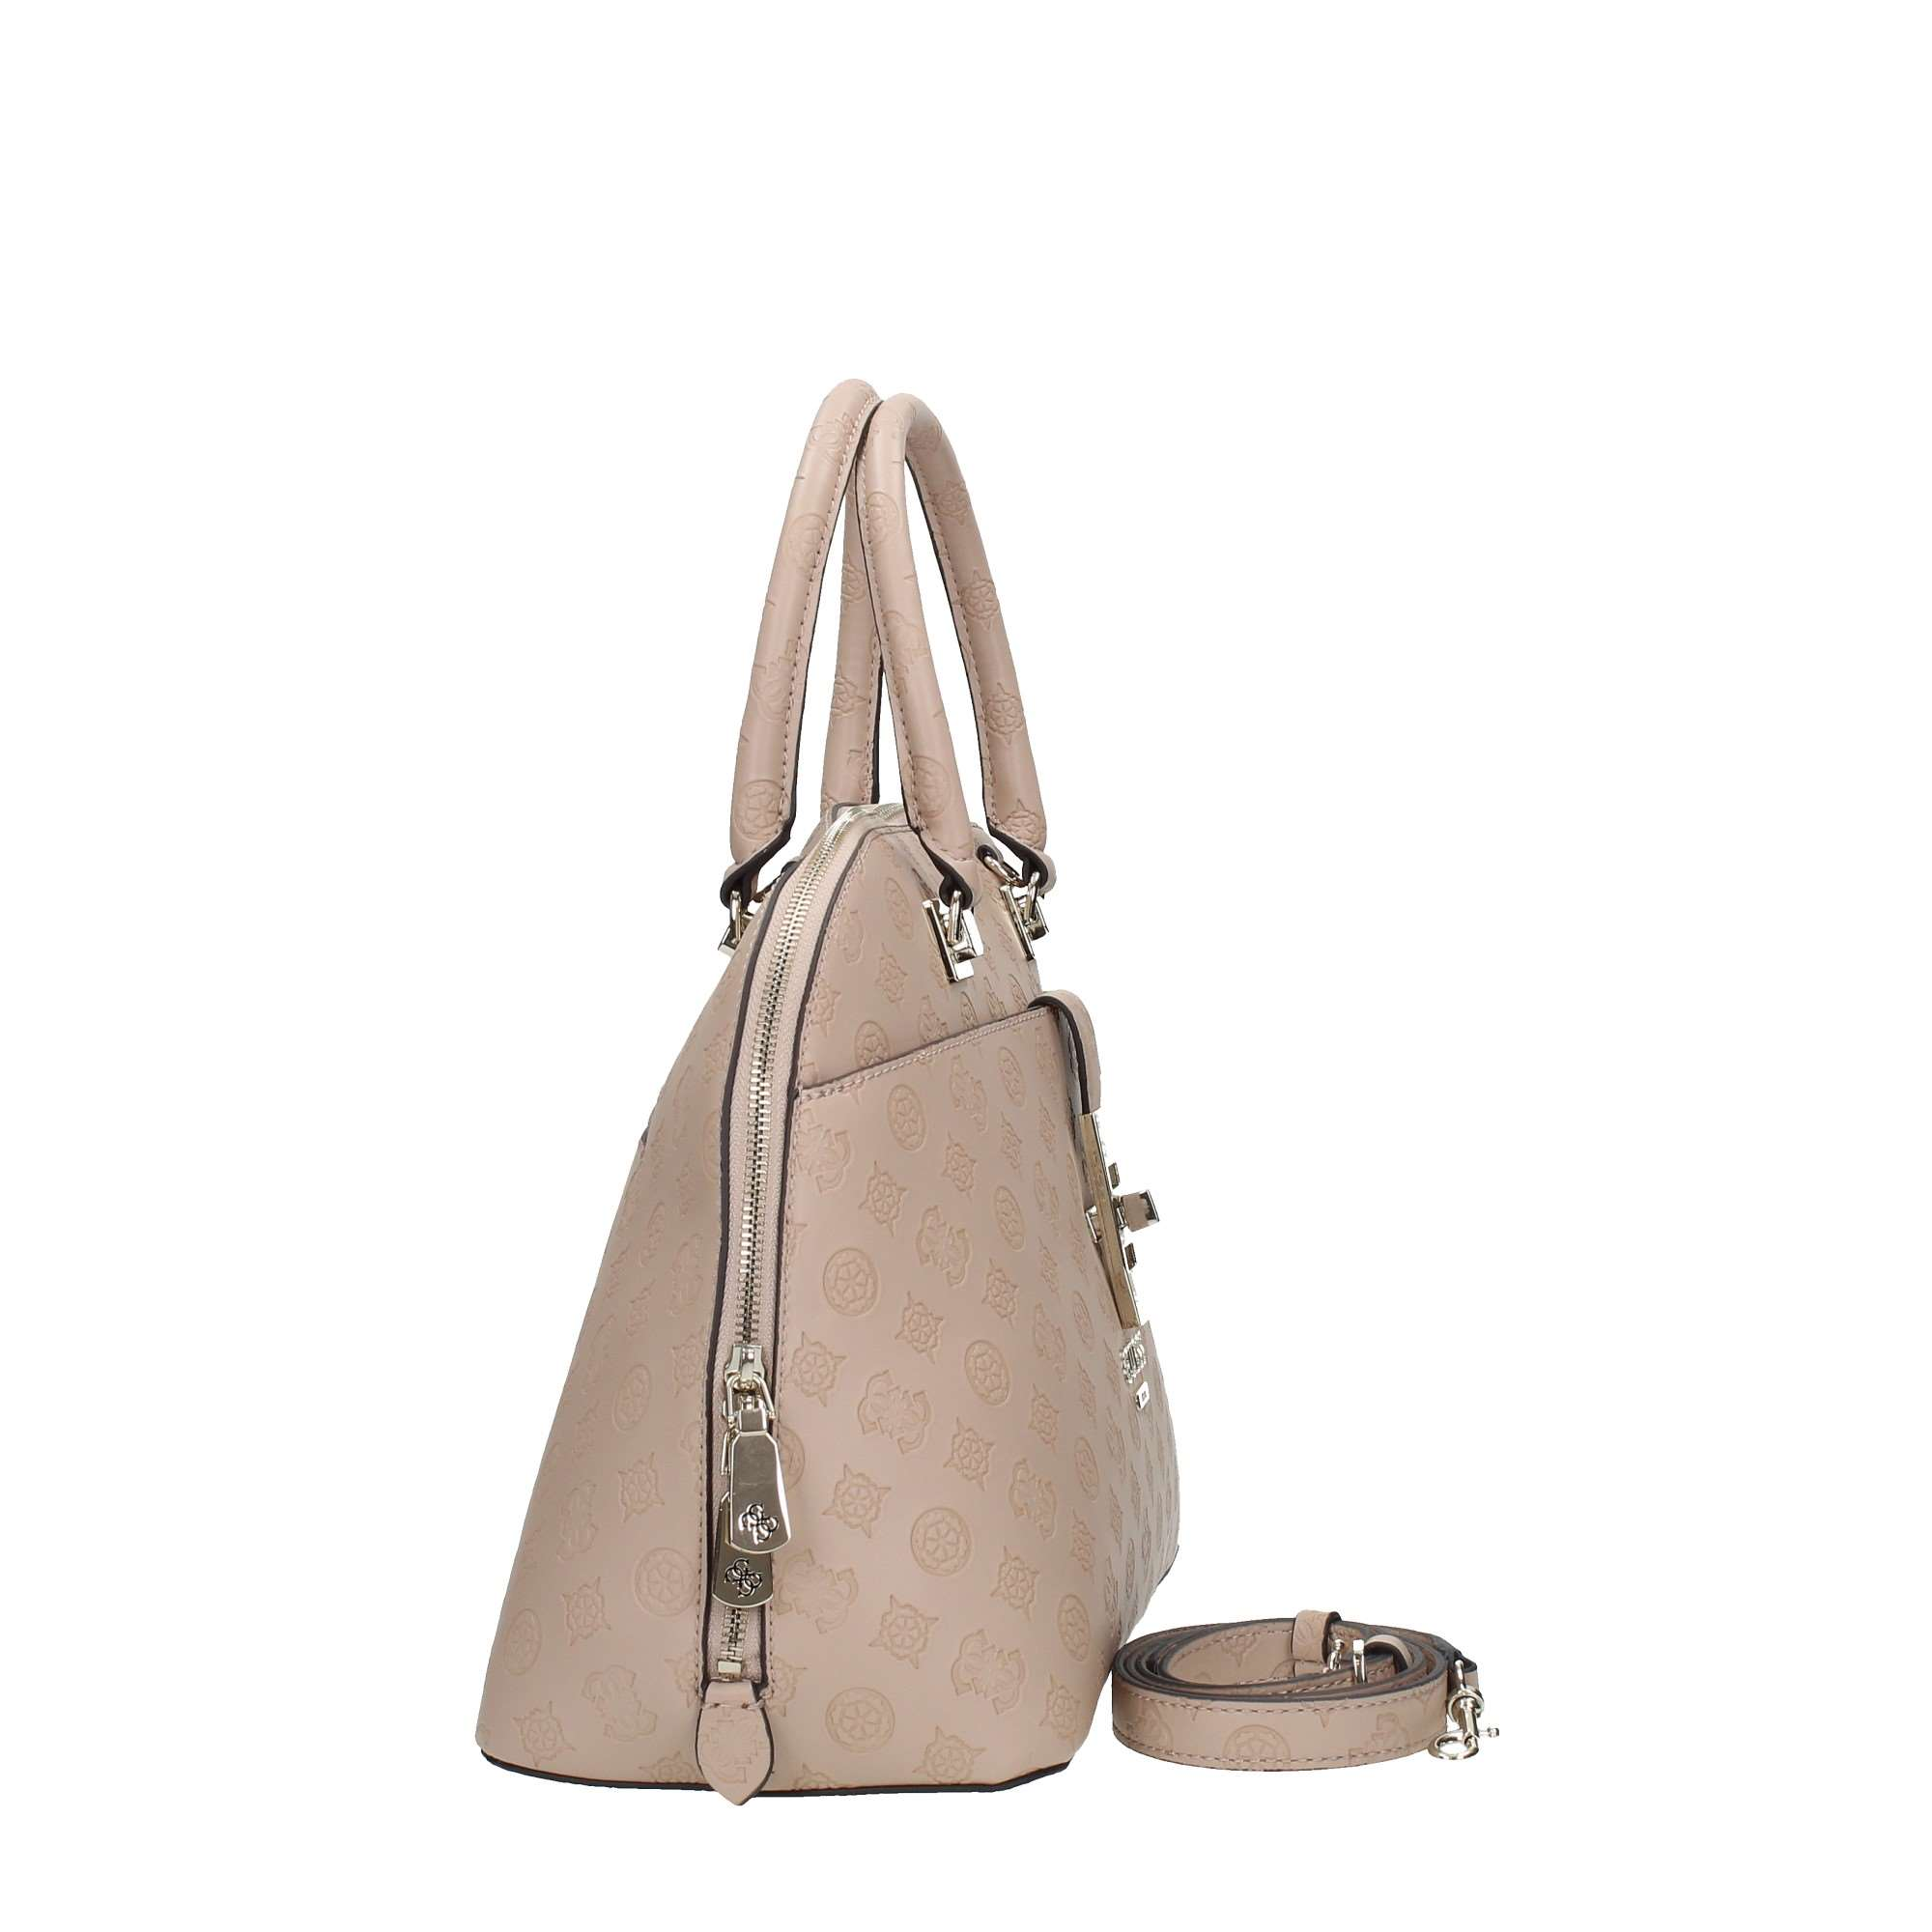 Guess Borse Accessories Women Shoulder Bags Beige HWSG73/98360